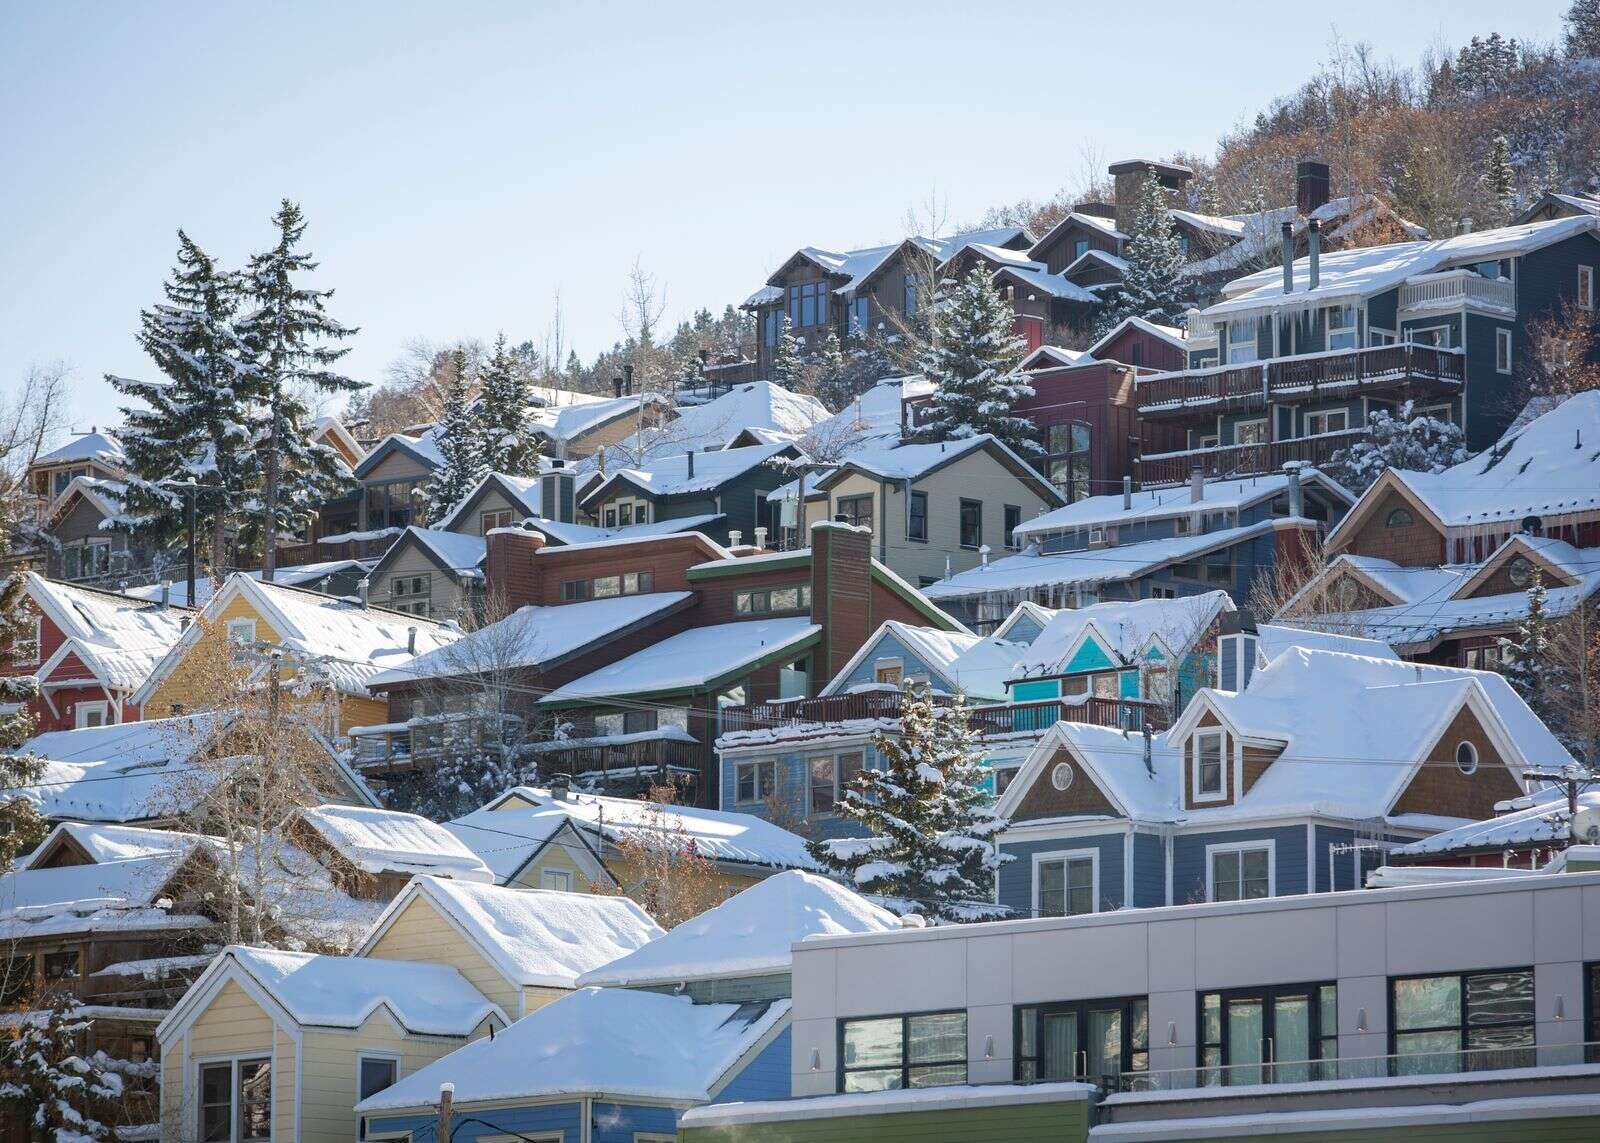 Park City's best eras recognized as '1990s (pre-Olympics)' and '2000s Boom times'